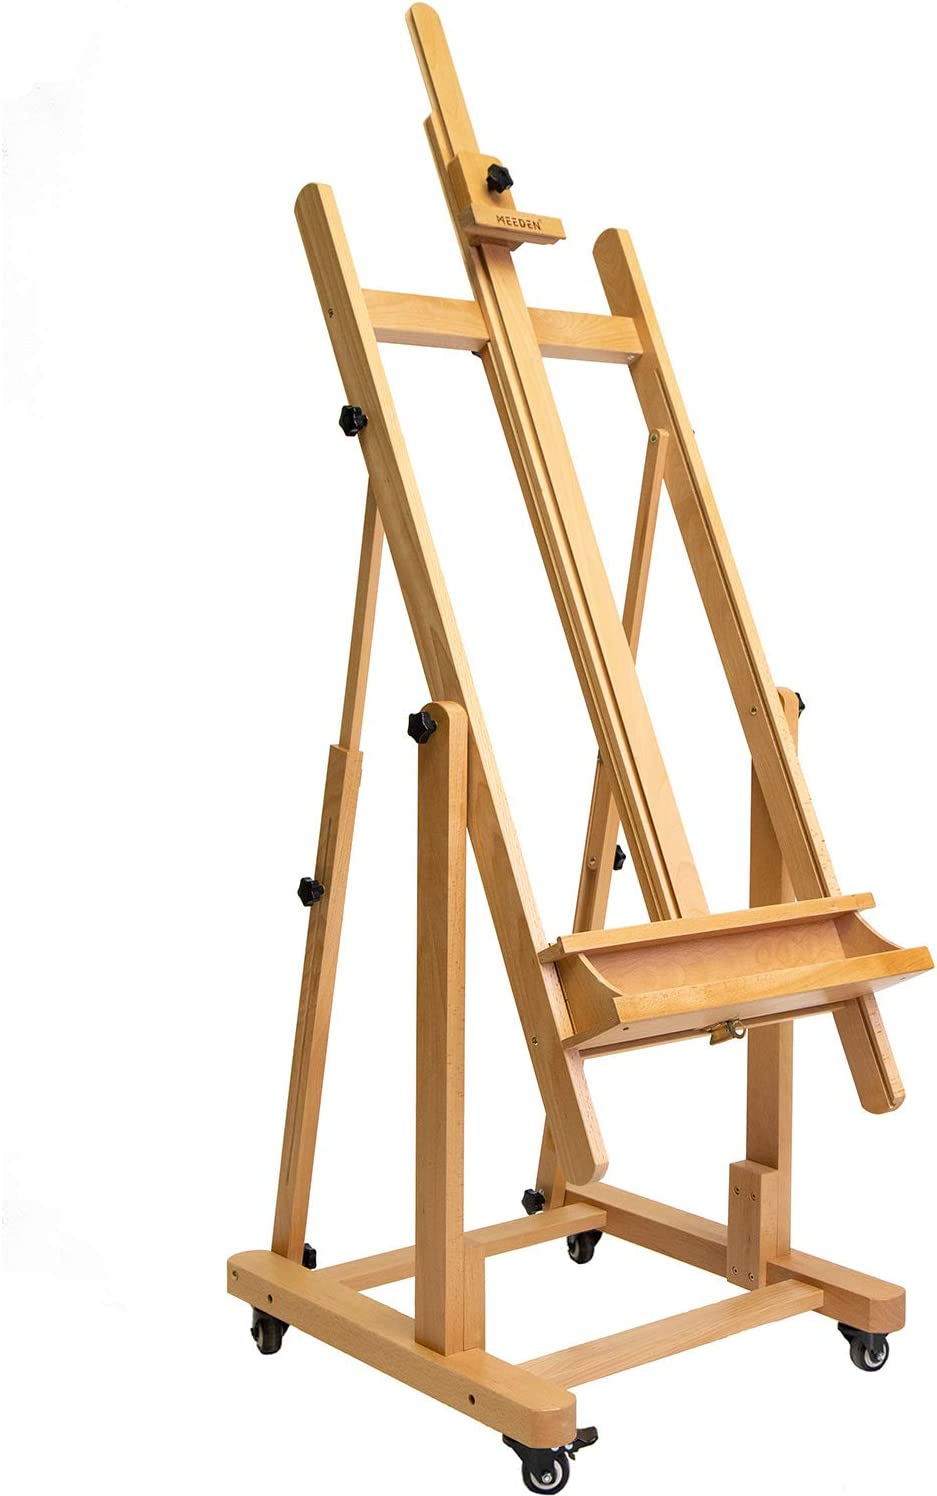 Meeden Extra Large Heavy Duty H Frame Studio Easel Versatile Solid Beech Wood Artist Professional Easel Adjustable Painting Easel Stand With 4 Premium Locking Silent Caster Wheels Hold Max 82 Amazon Ca Home Kitchen